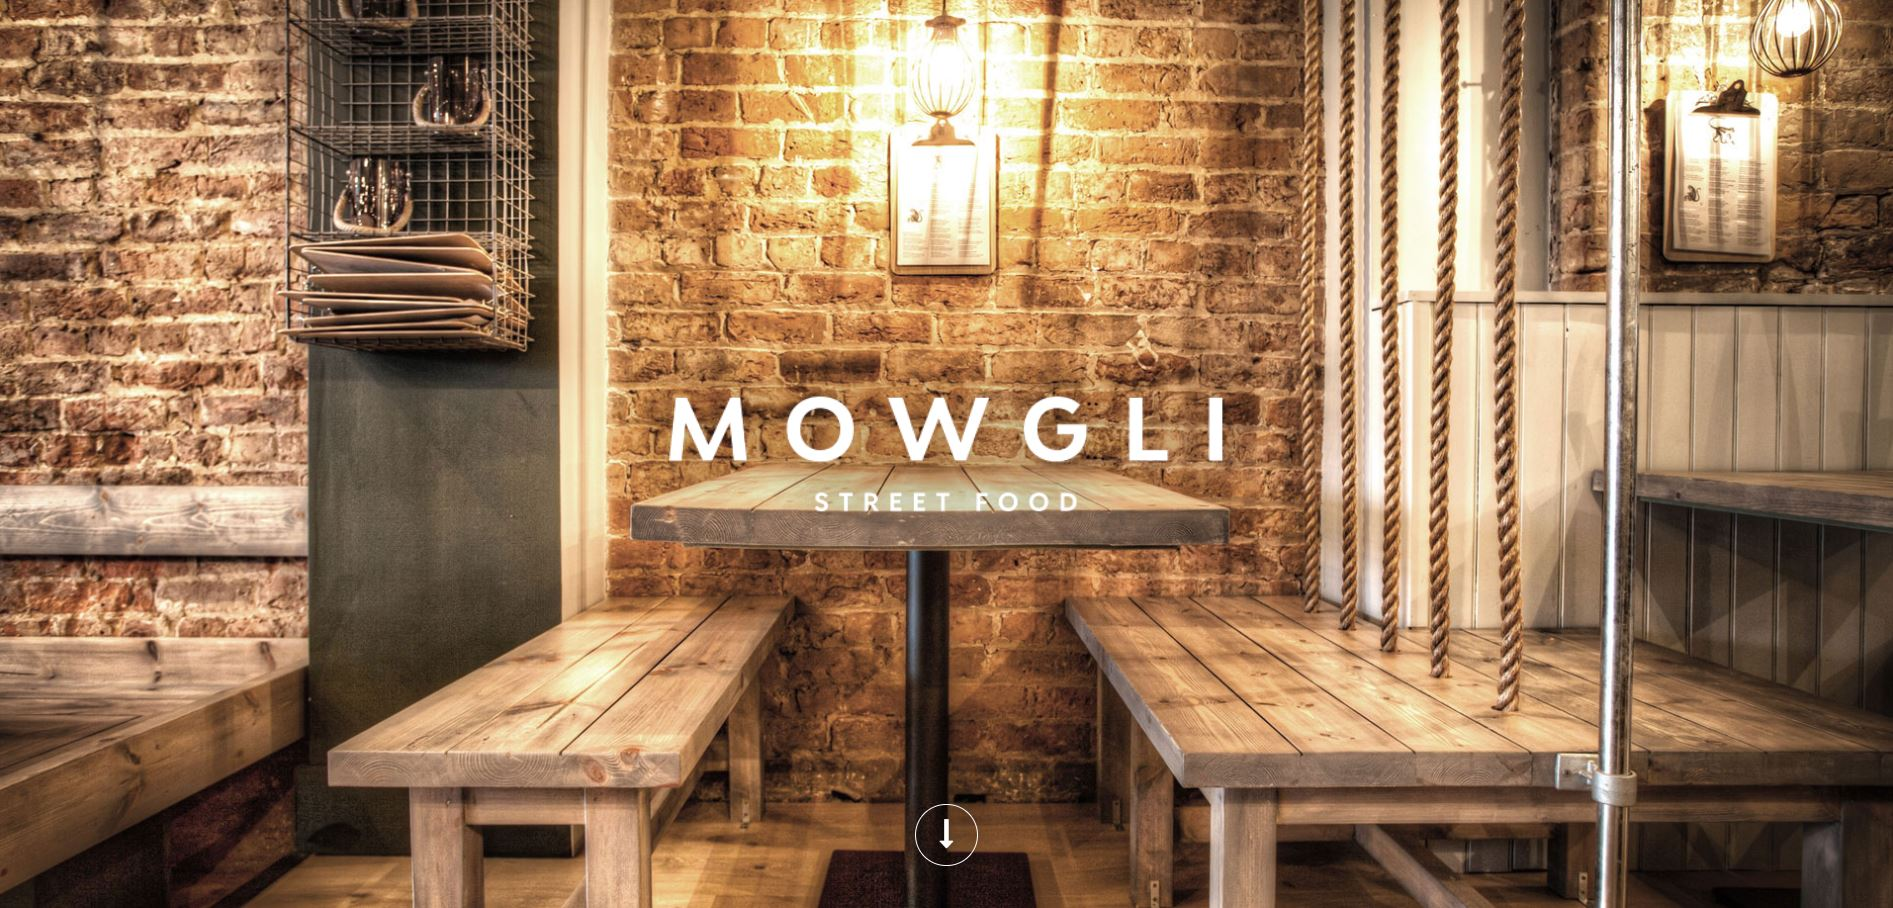 MOWGLI SET TO SWING INTO HOCKLEY NOTTINGHAM